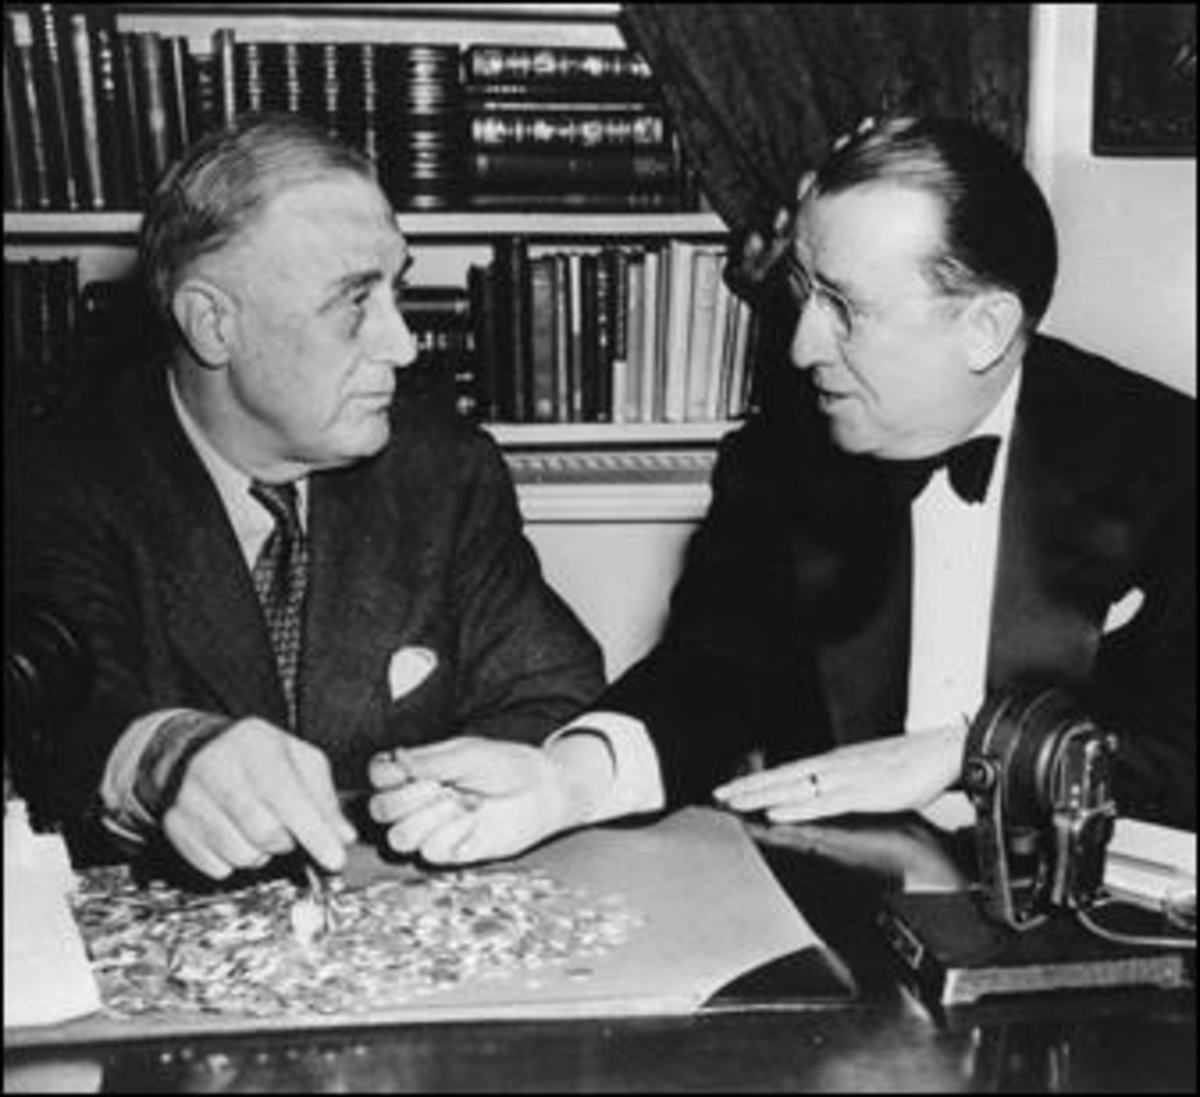 FDR with O'Connor, who was at first reluctant to take on this project, then quickly became dedicated to it.